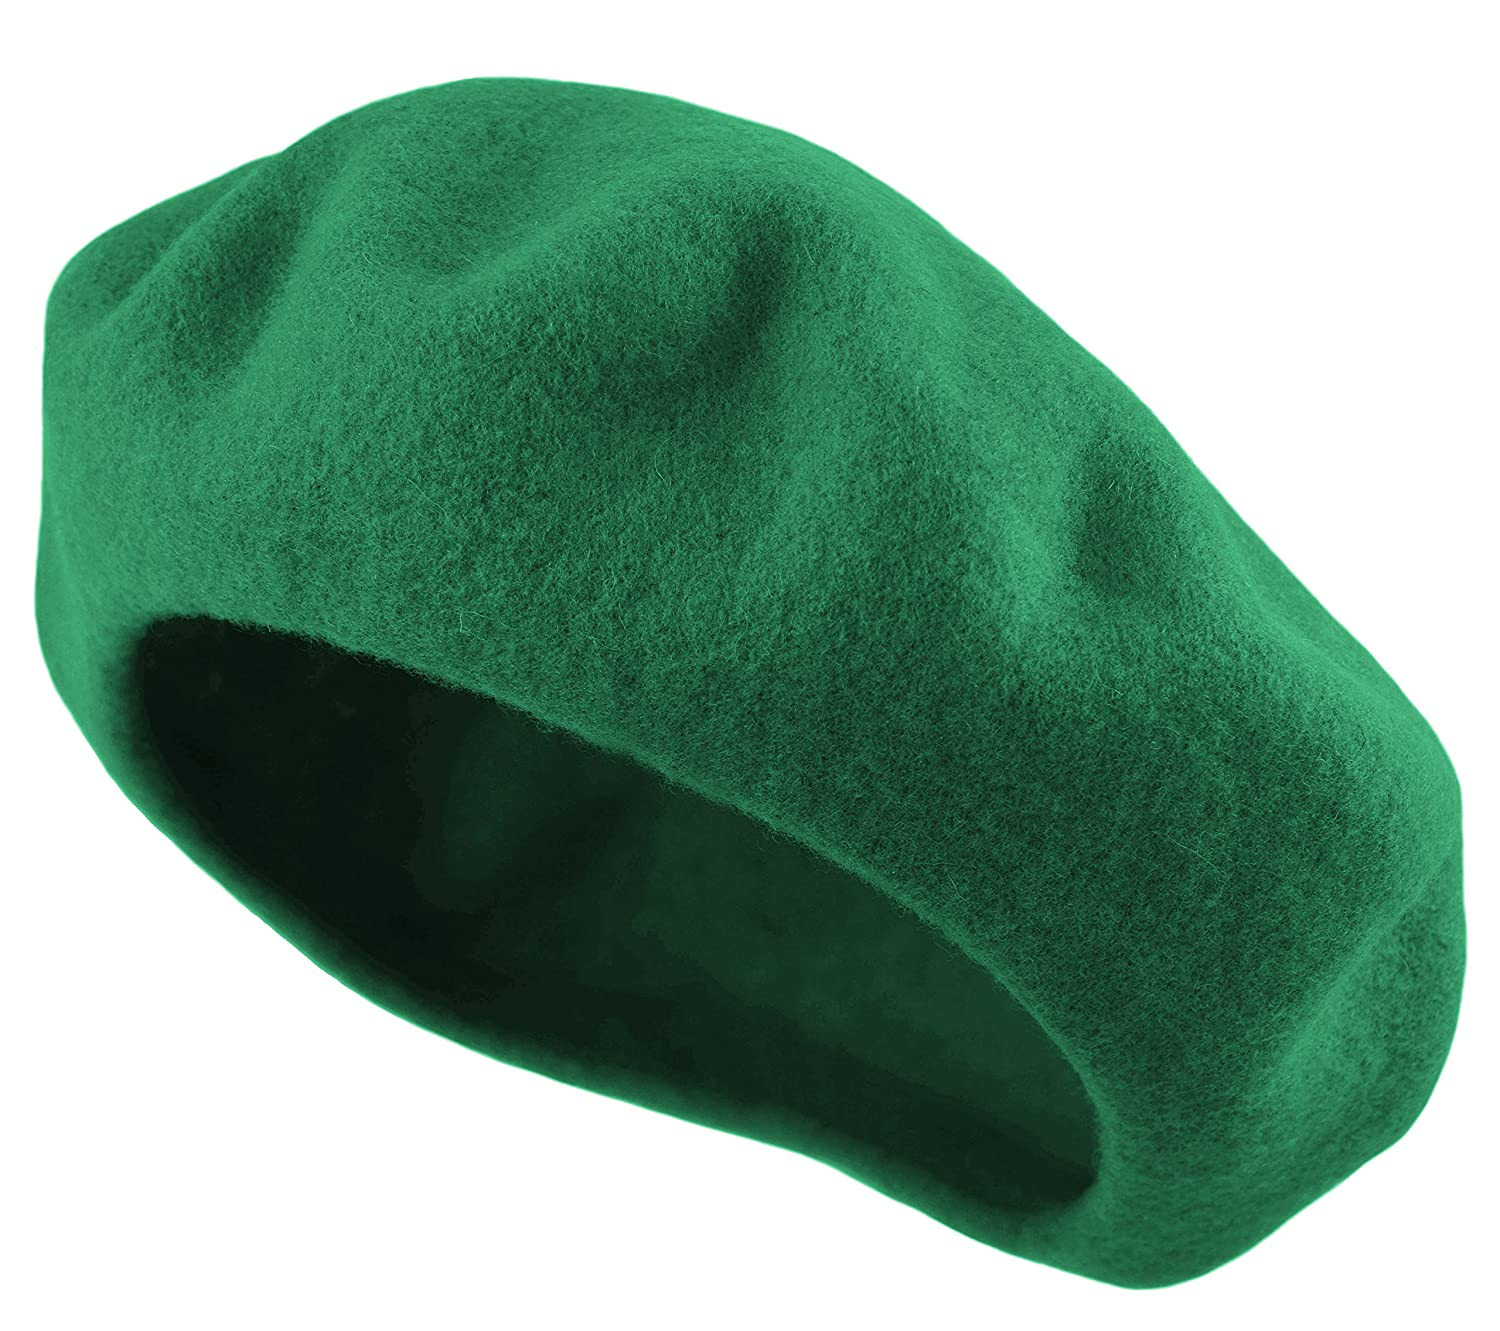 Deewang Traditional Women's Men's Solid Color Plain Wool French Beret One Size